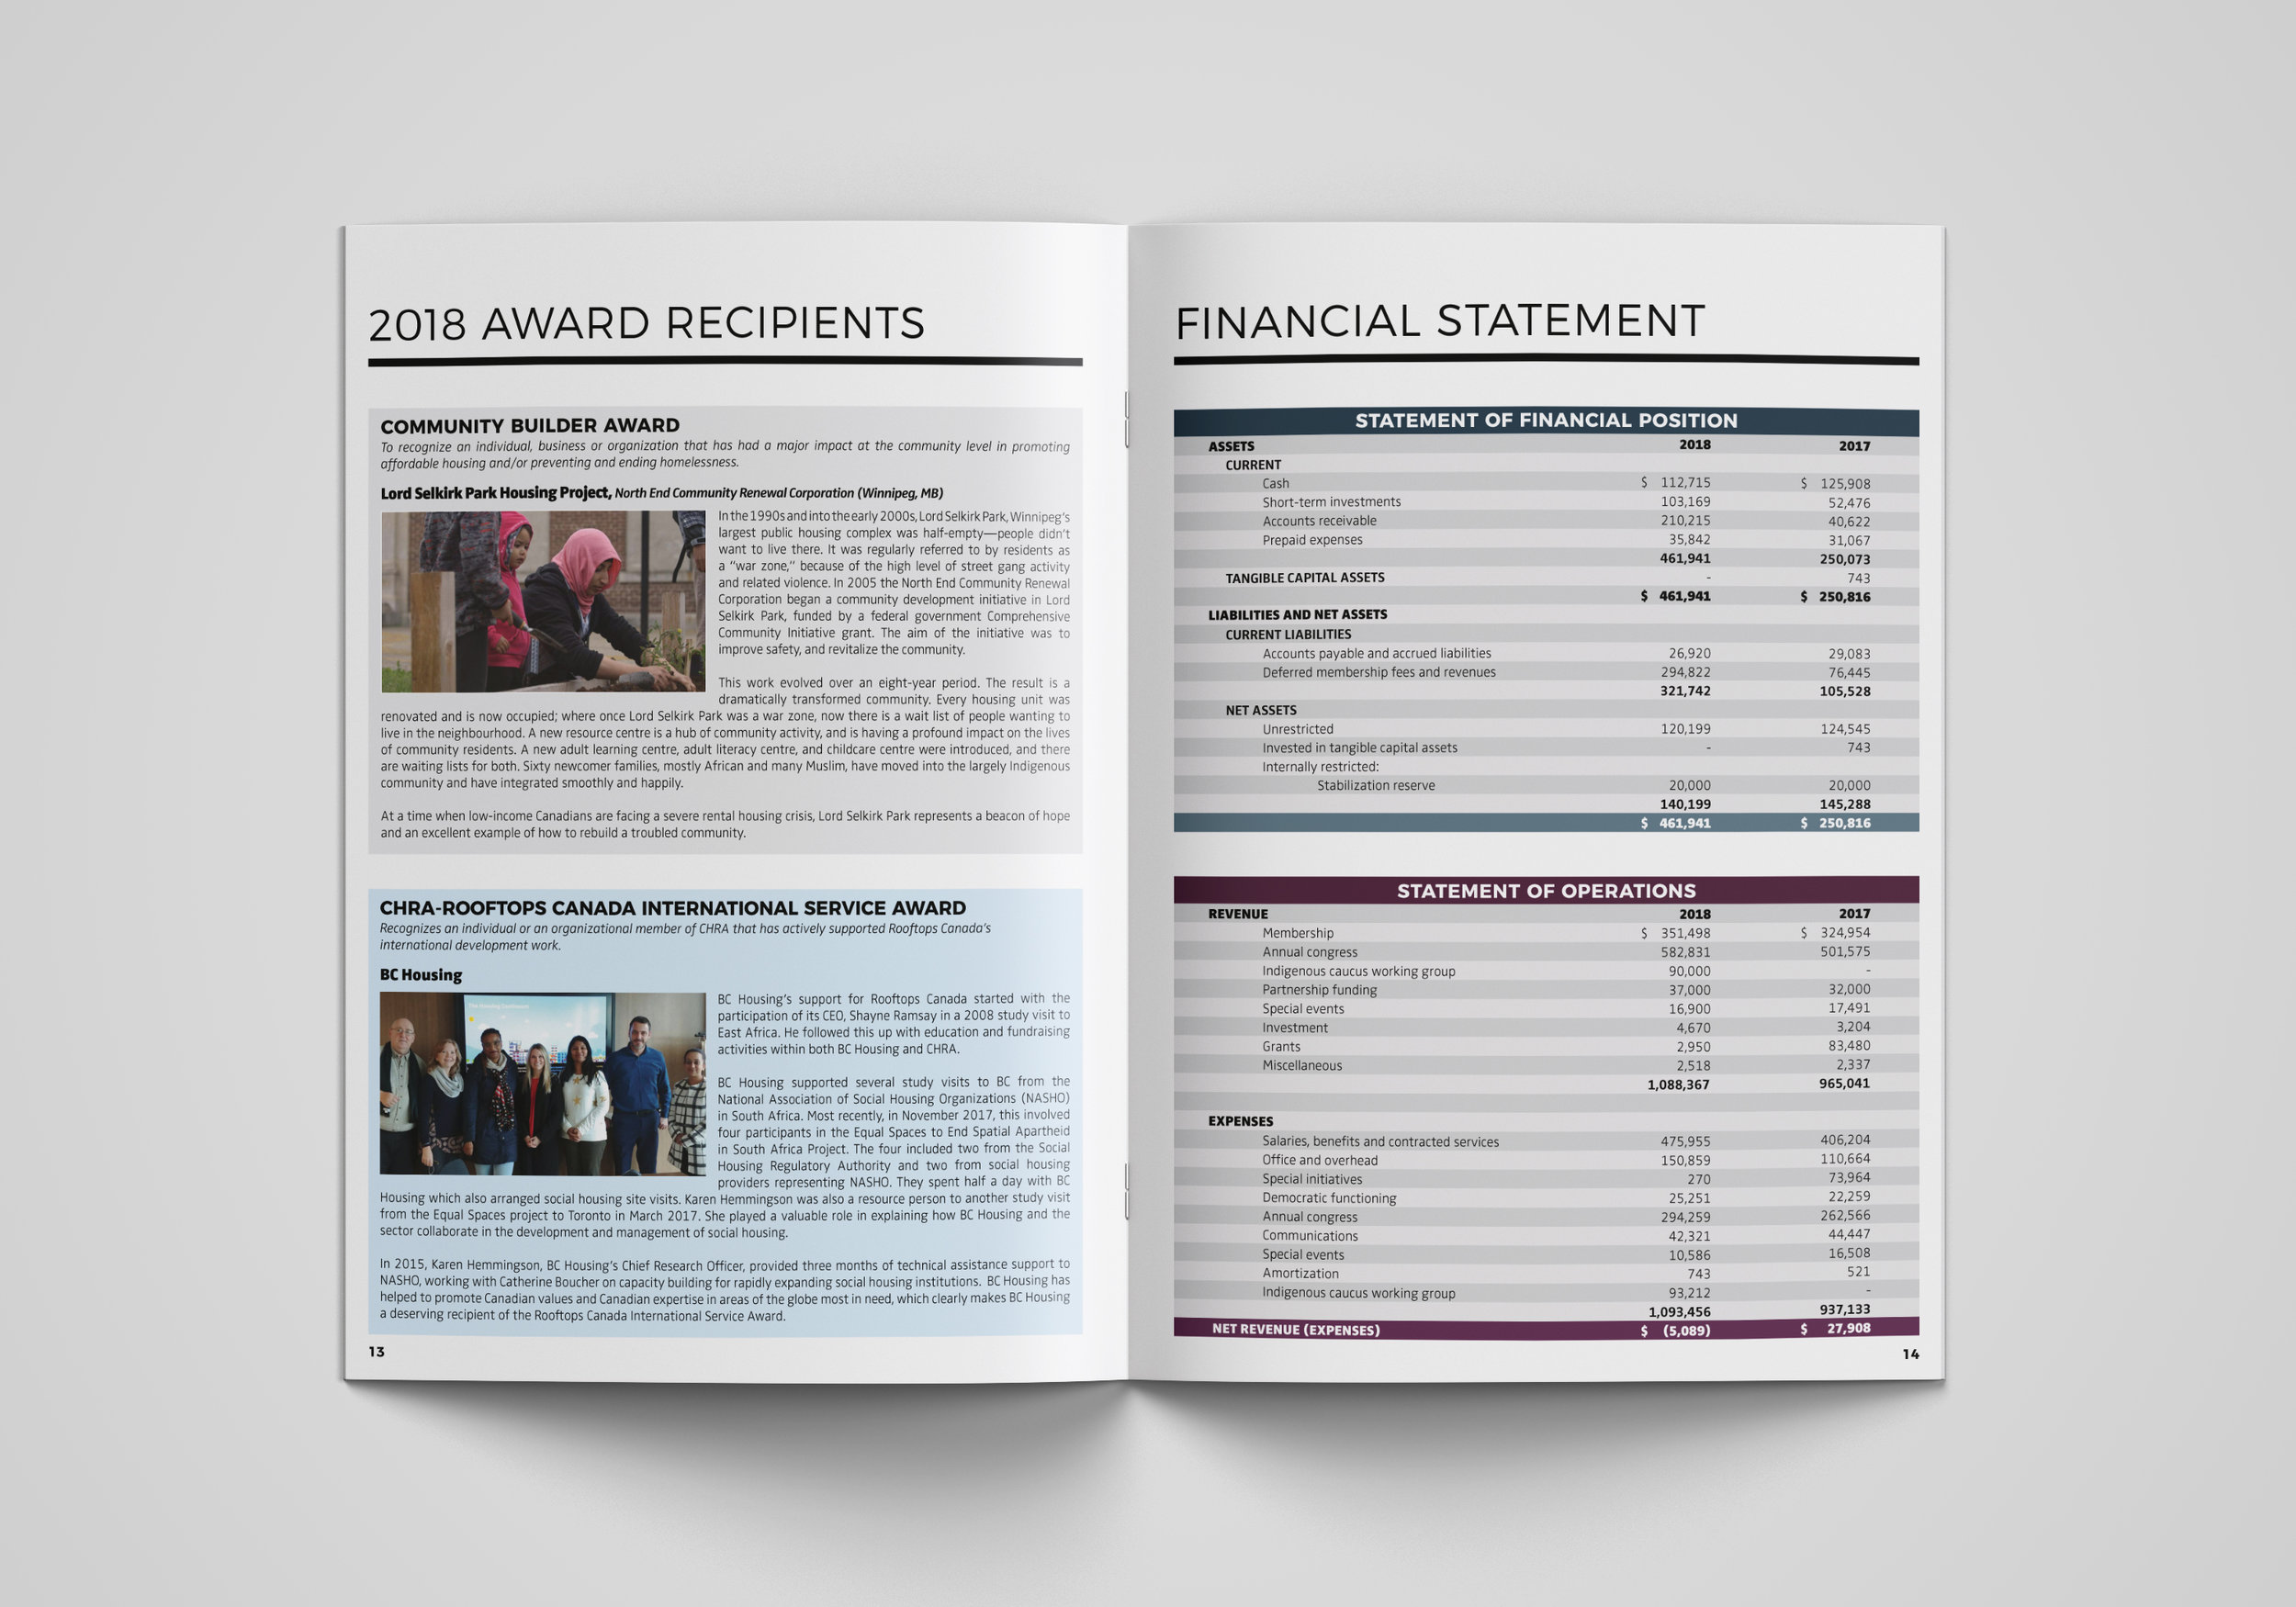 2018 Annual Report Awards and Financial Statement.